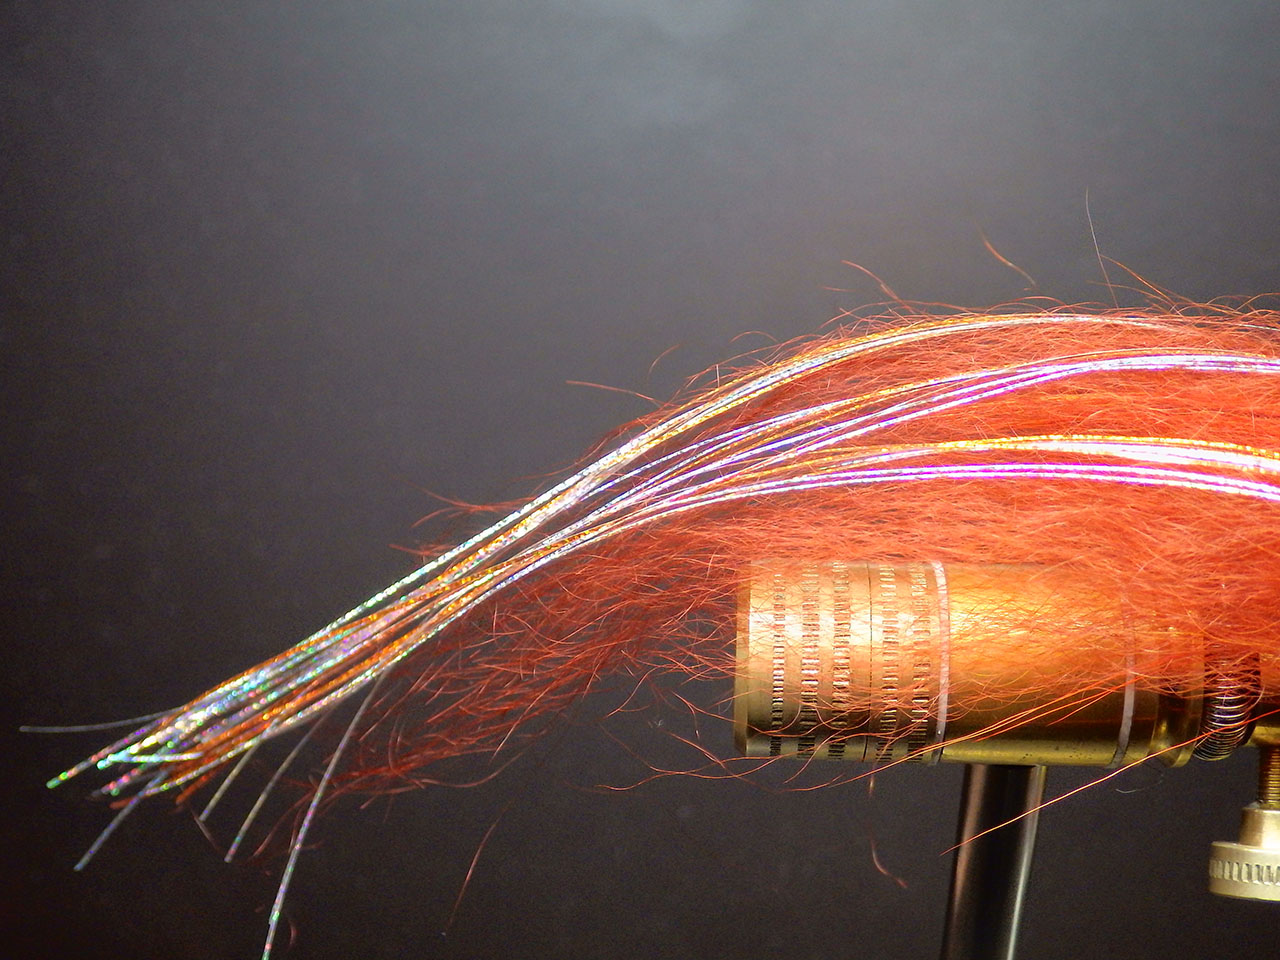 7. The length of the holographic fibres should be a little longer than the yak wing.